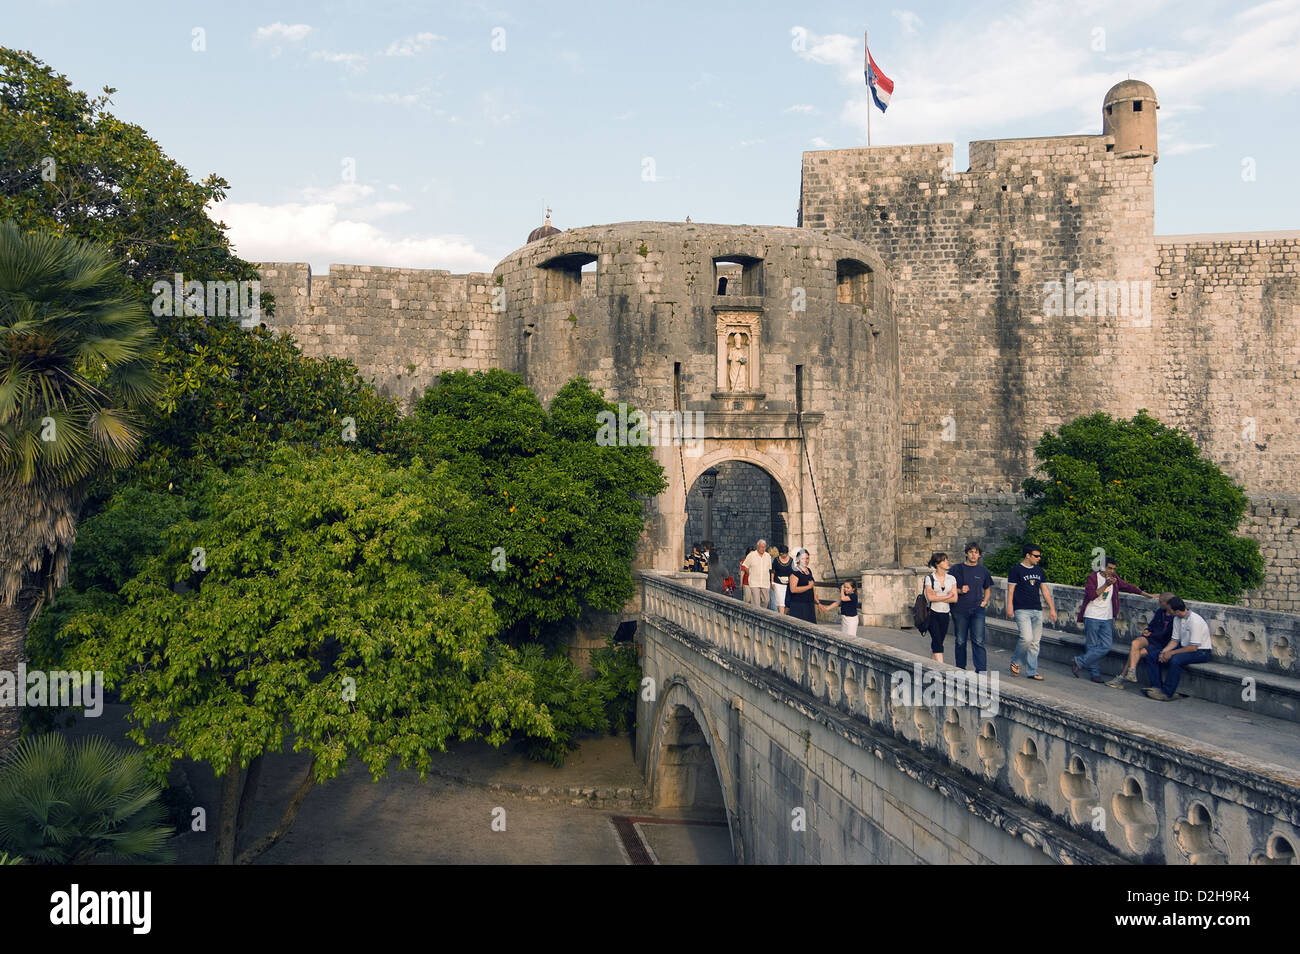 Elk192-3274v Croatia, Dubrovnik, city defensive walls and towers, Pile Gate - Stock Image